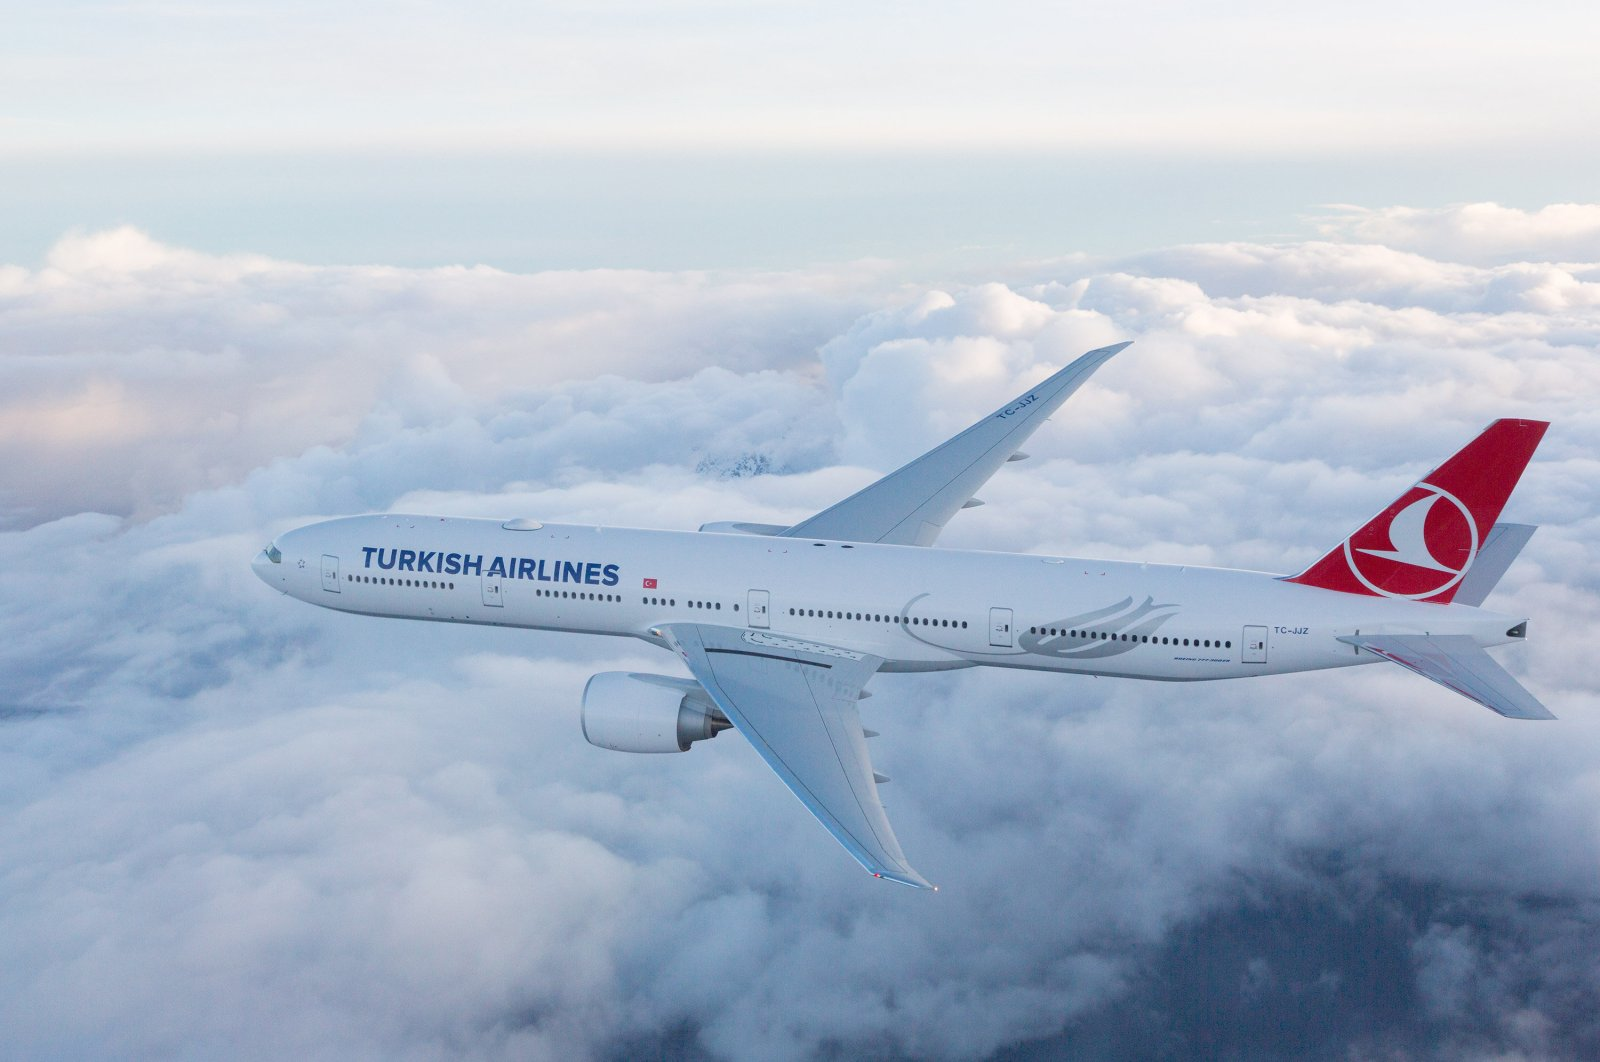 Turkish Airlines has drafted a plan for resuming flights after a halt caused by coronavirus restrictions. (DHA Photo)